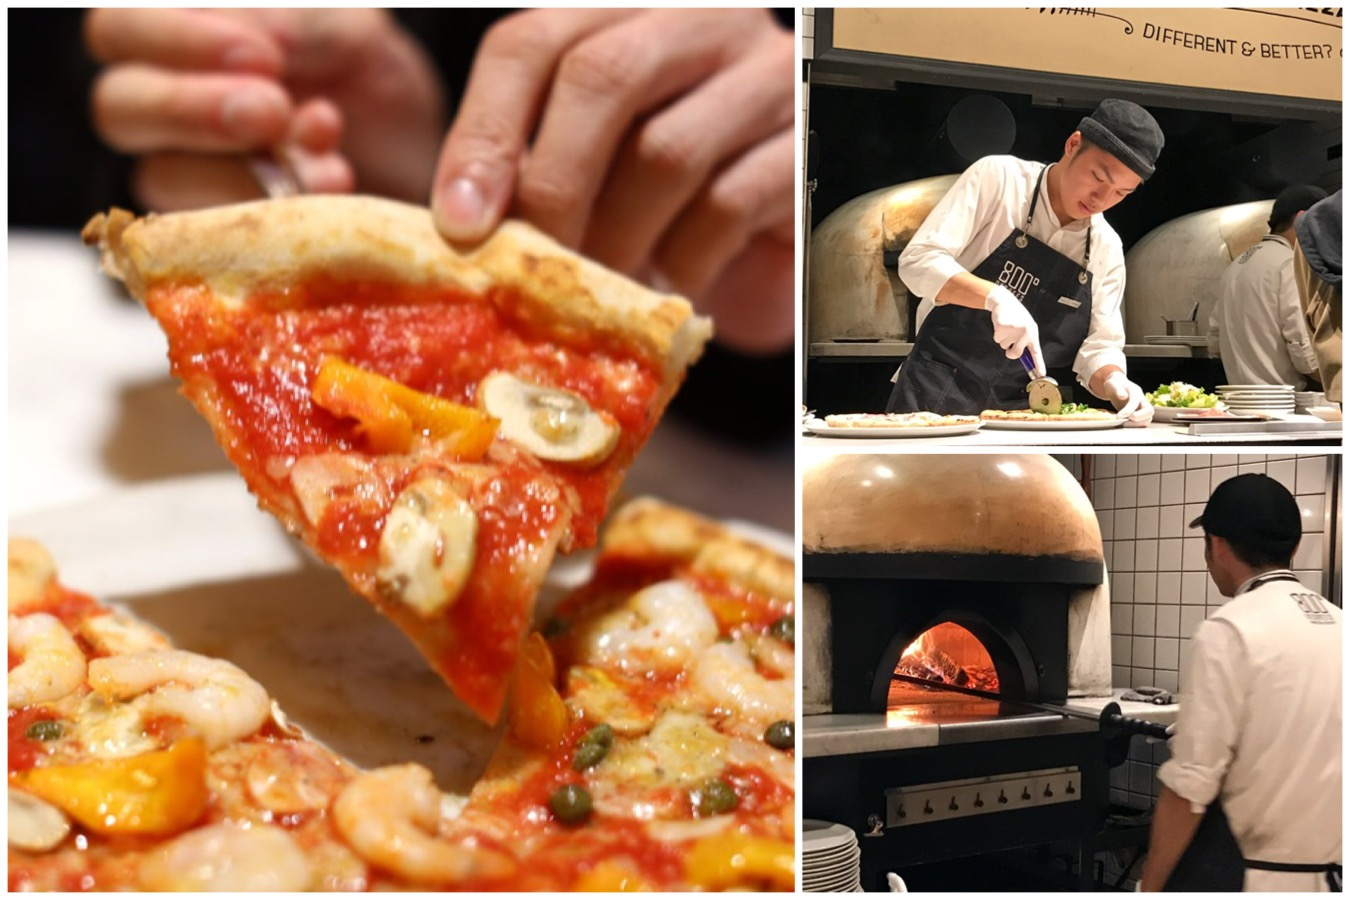 800 Degrees Neapolitan Pizzeria - Oishii Customised Pizzas Cooked In 90 Seconds, At Shinjuku Tokyo